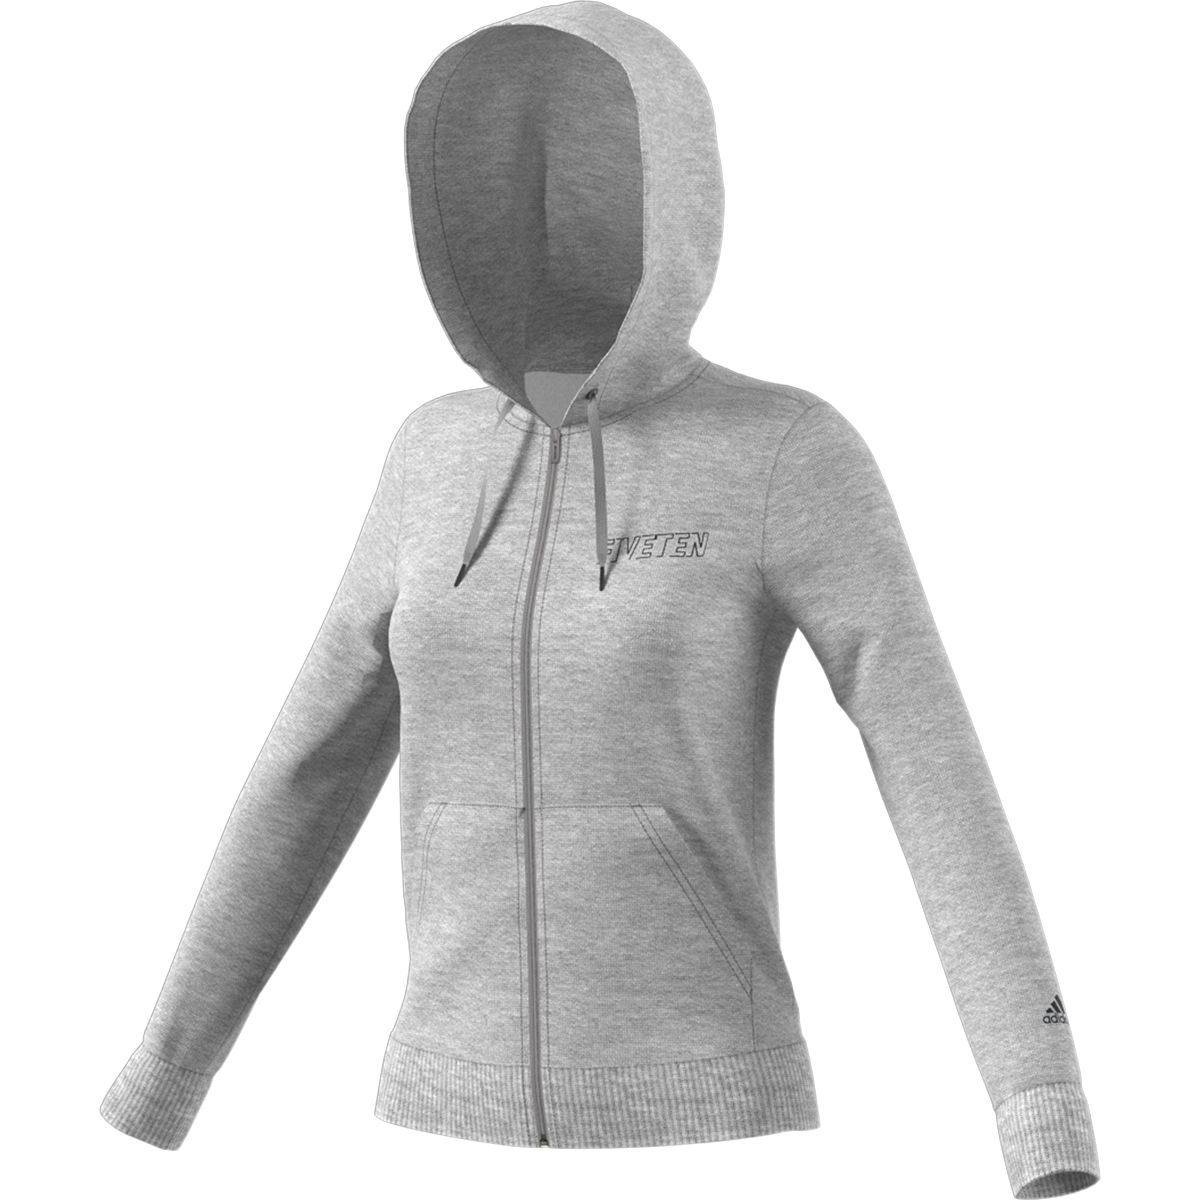 510 FZ HOODIE hooded sweater for women